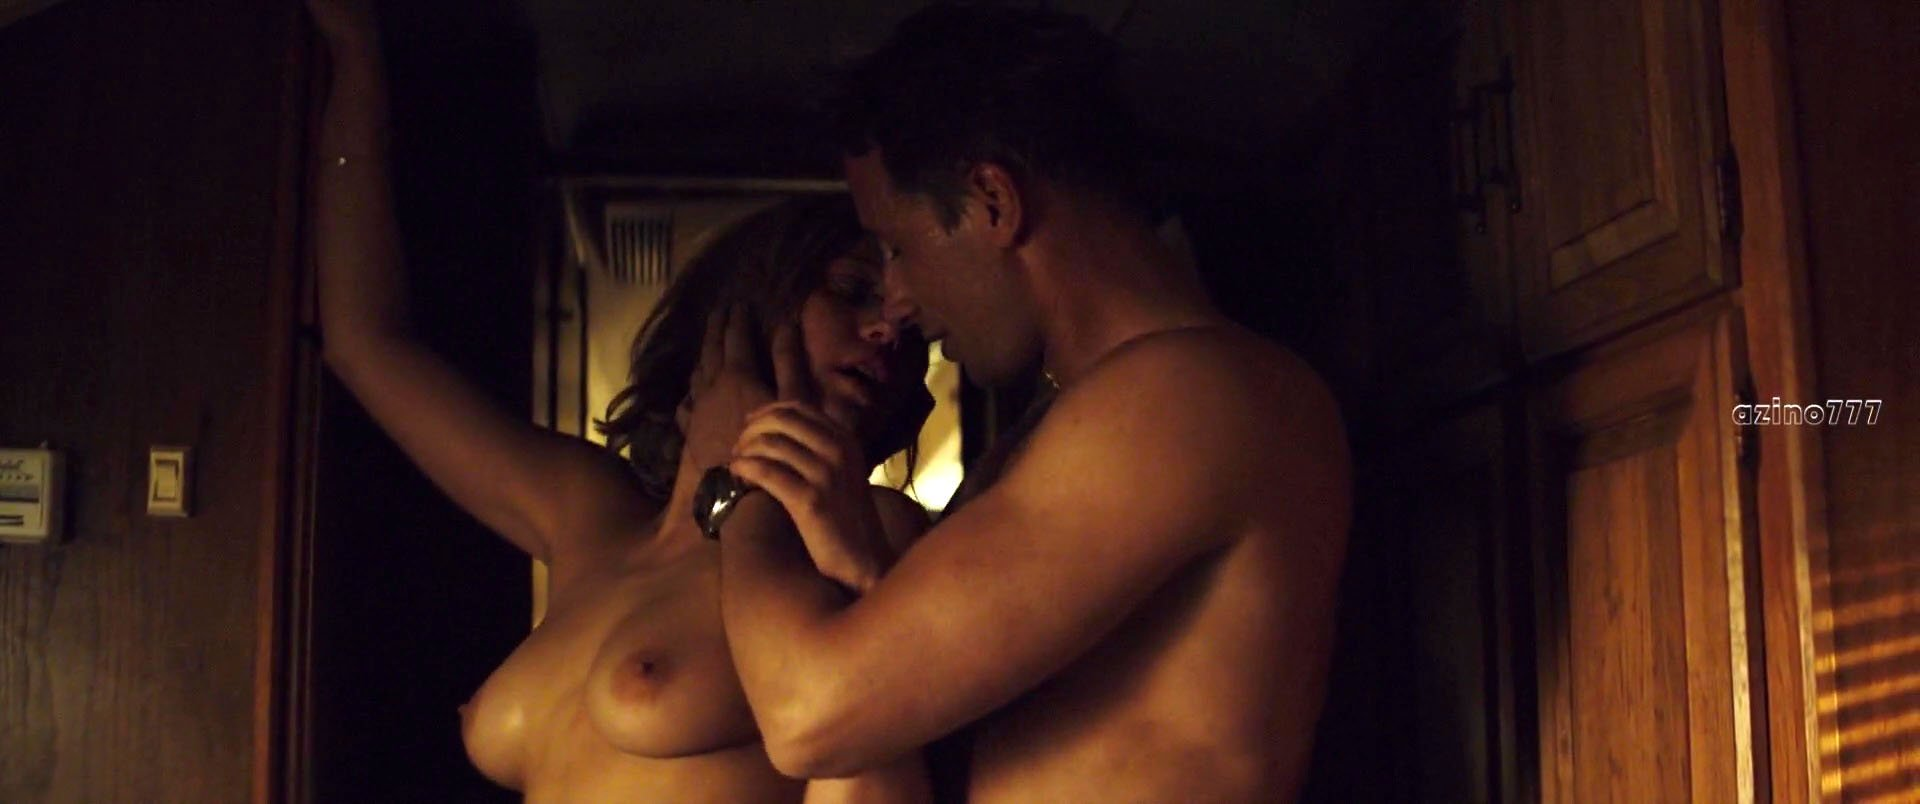 Adele exarchopoulos racer and the jailbird - 3 part 4